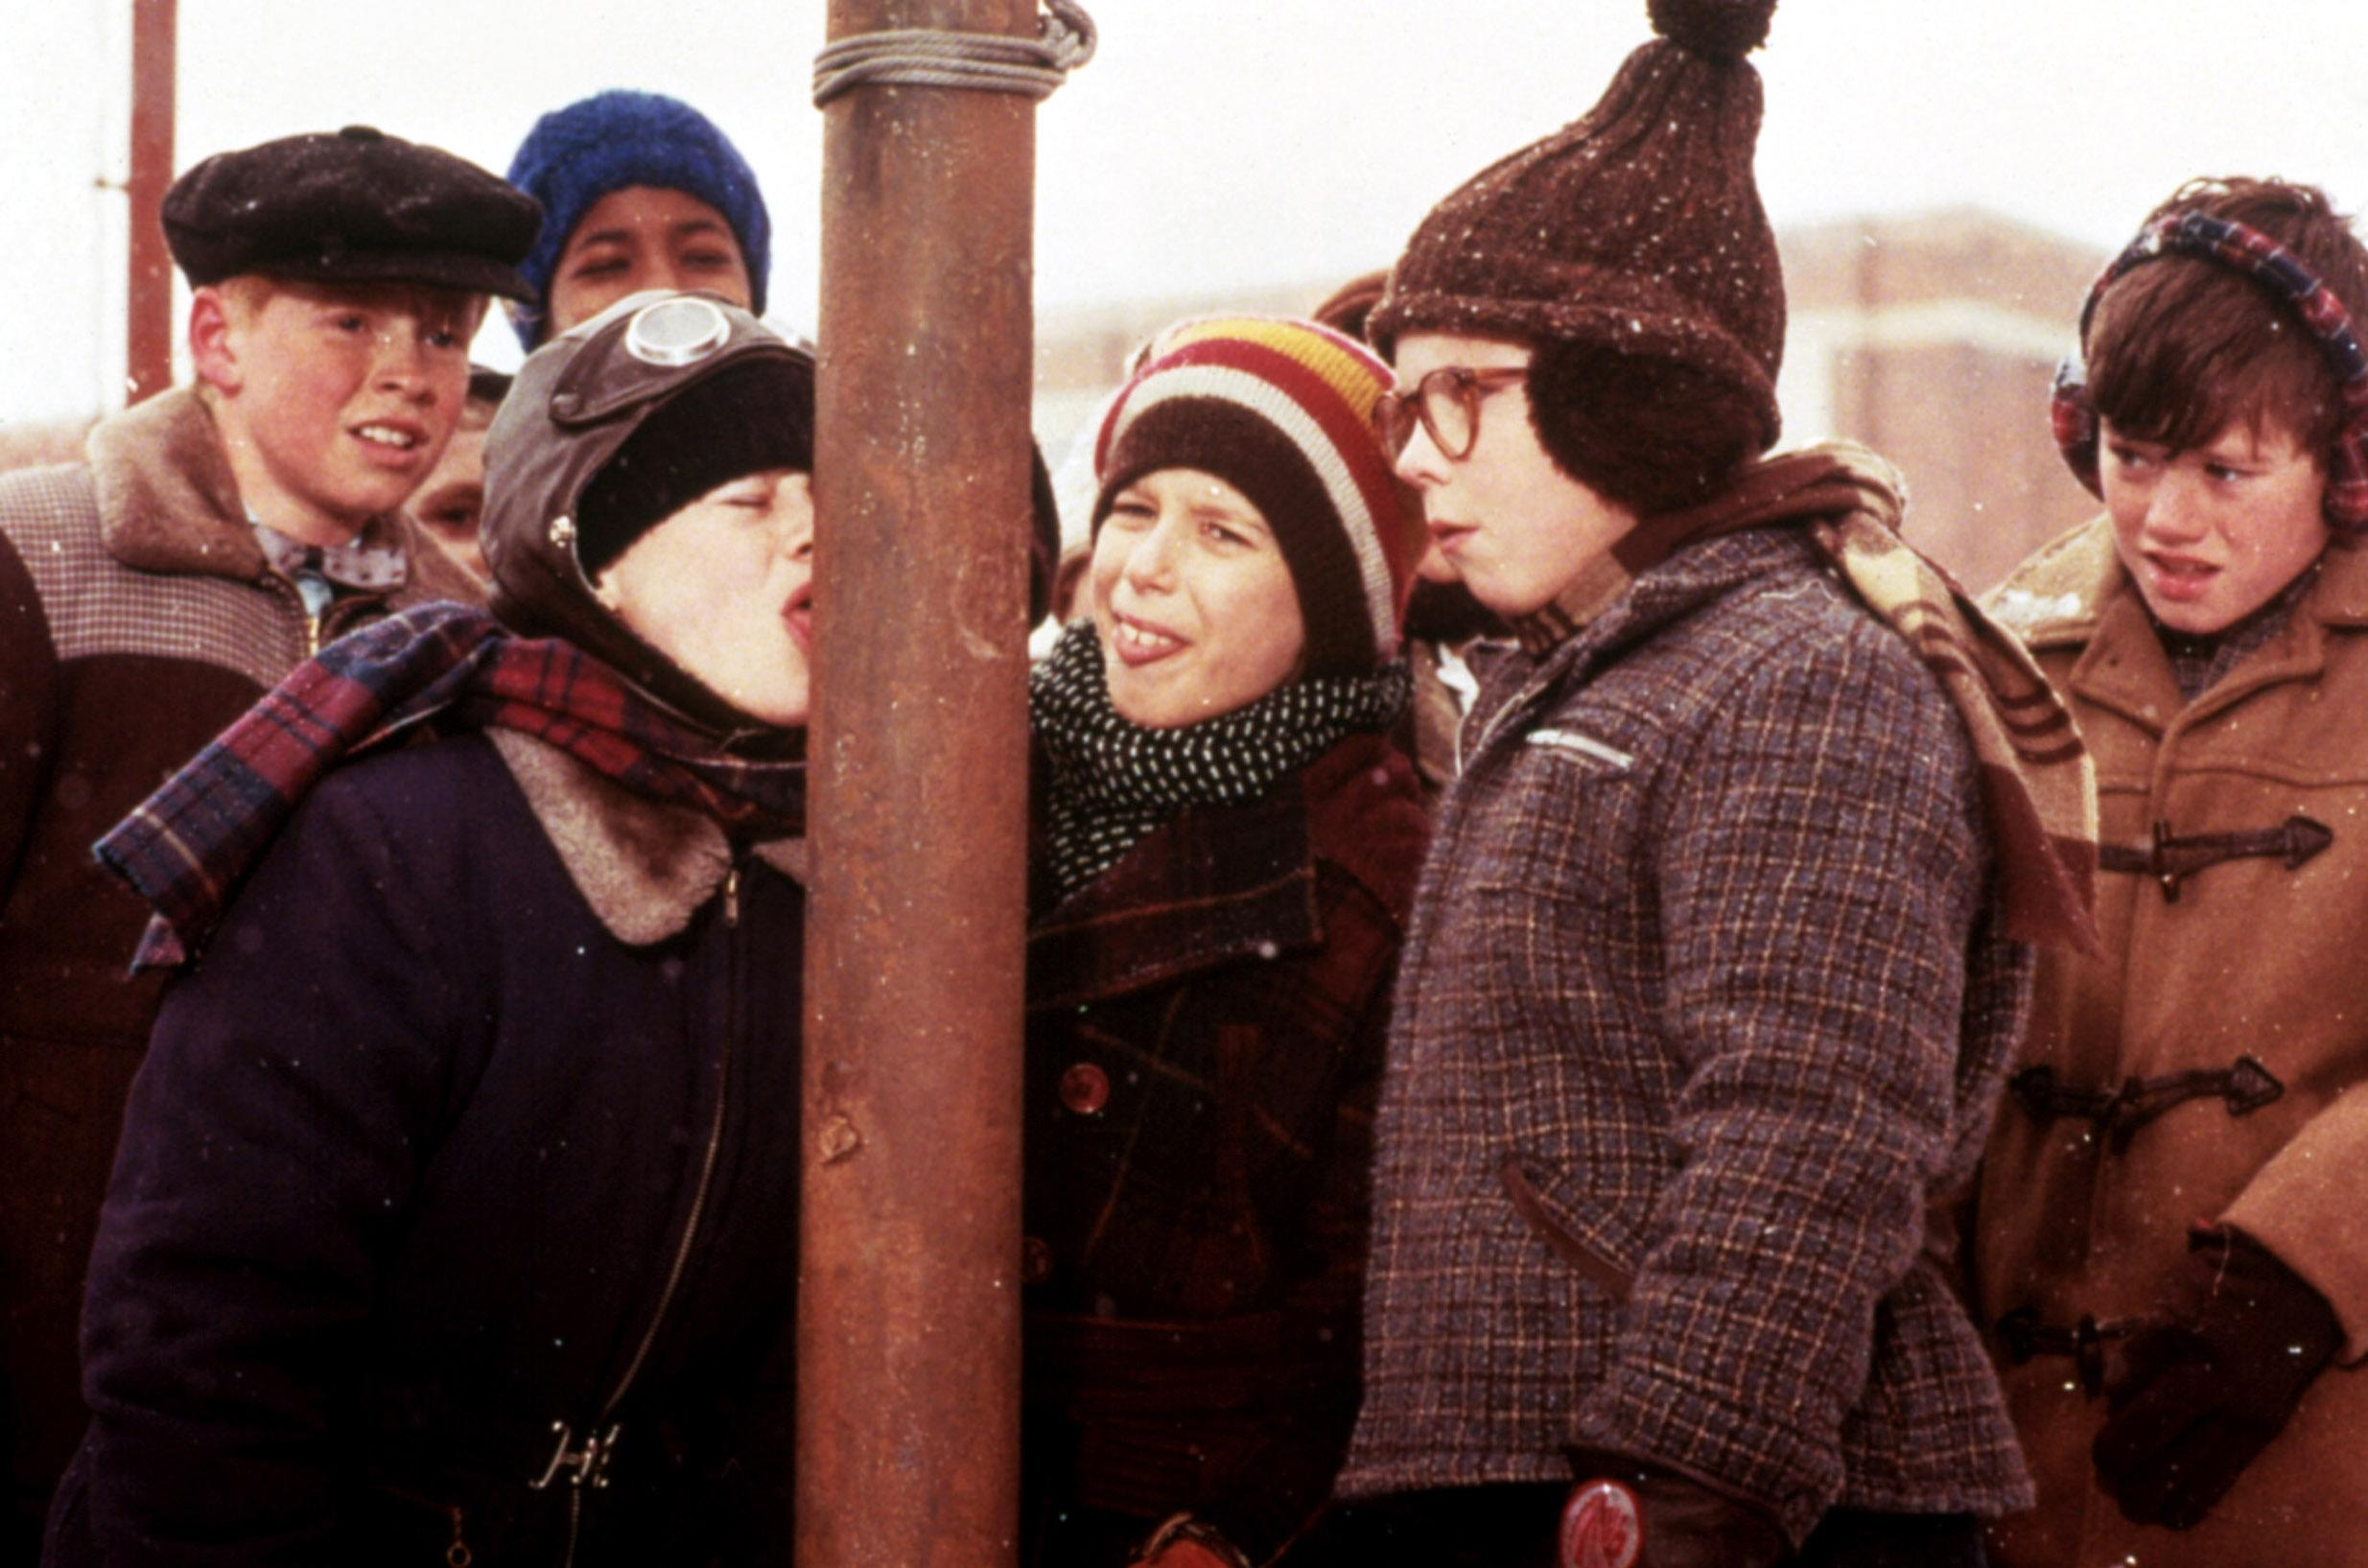 Christmas Story 2.5 Reasons Why A Christmas Story Is A Terrible Christmas